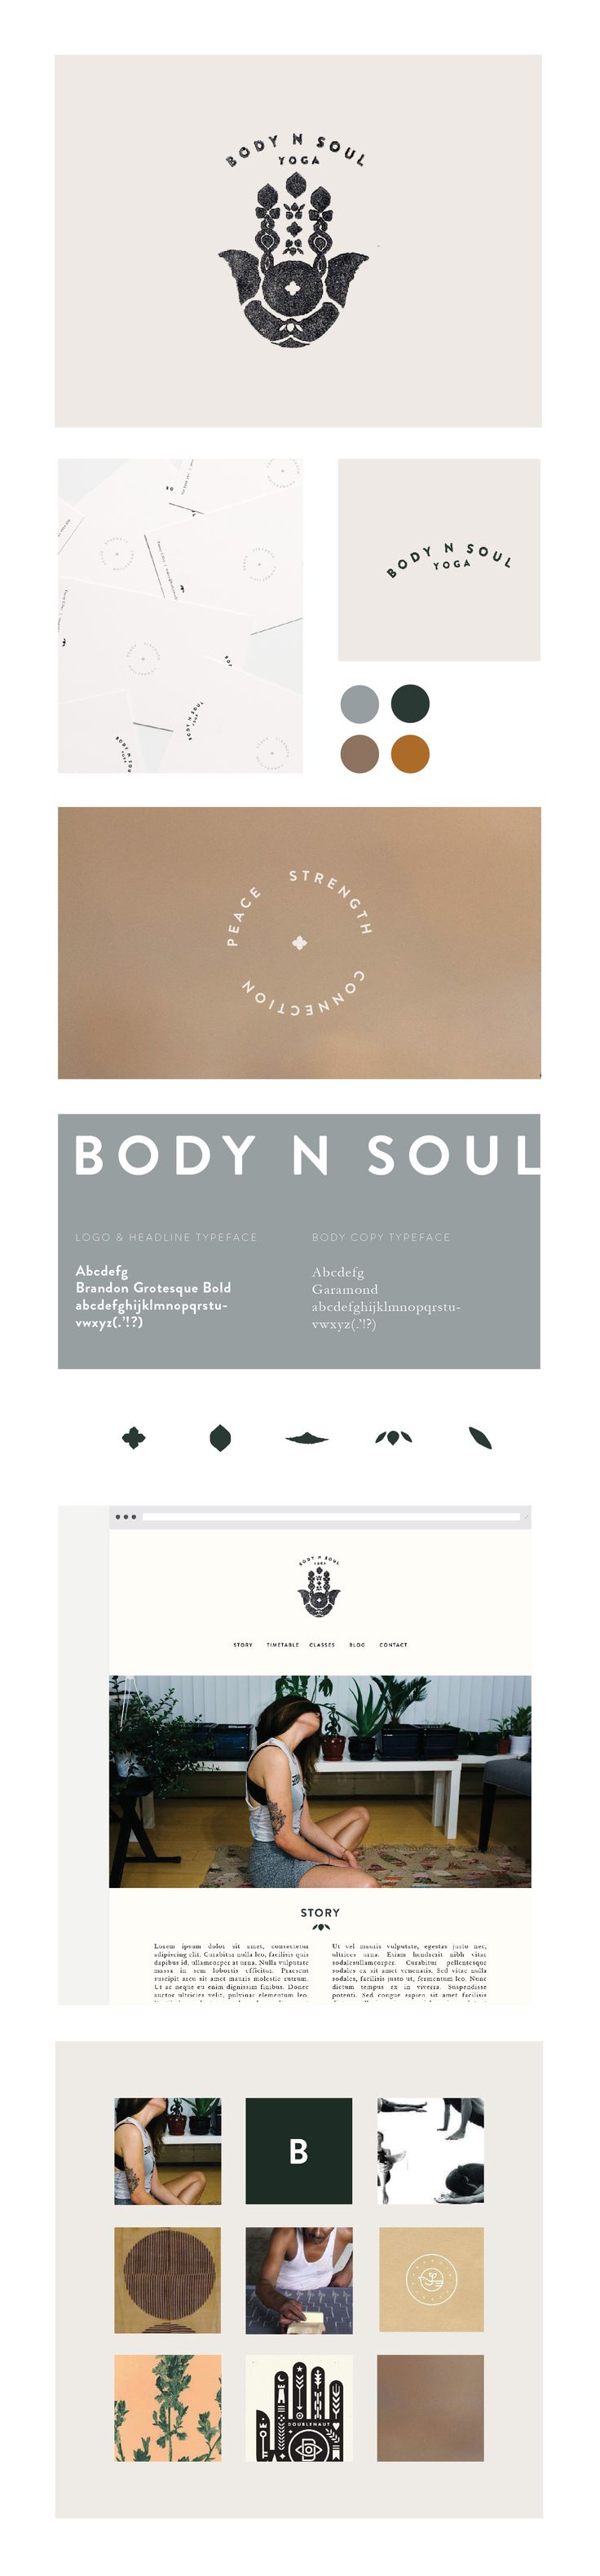 Simple, modern logo design by Kelsey Hutchinson. Click the link to see more.   http://kelseyhutchinson.com/Body-n-Soul-Yoga  Brand identity, print and web design for Body n Soul Yoga, a yoga studio ba (Pilates Logo)